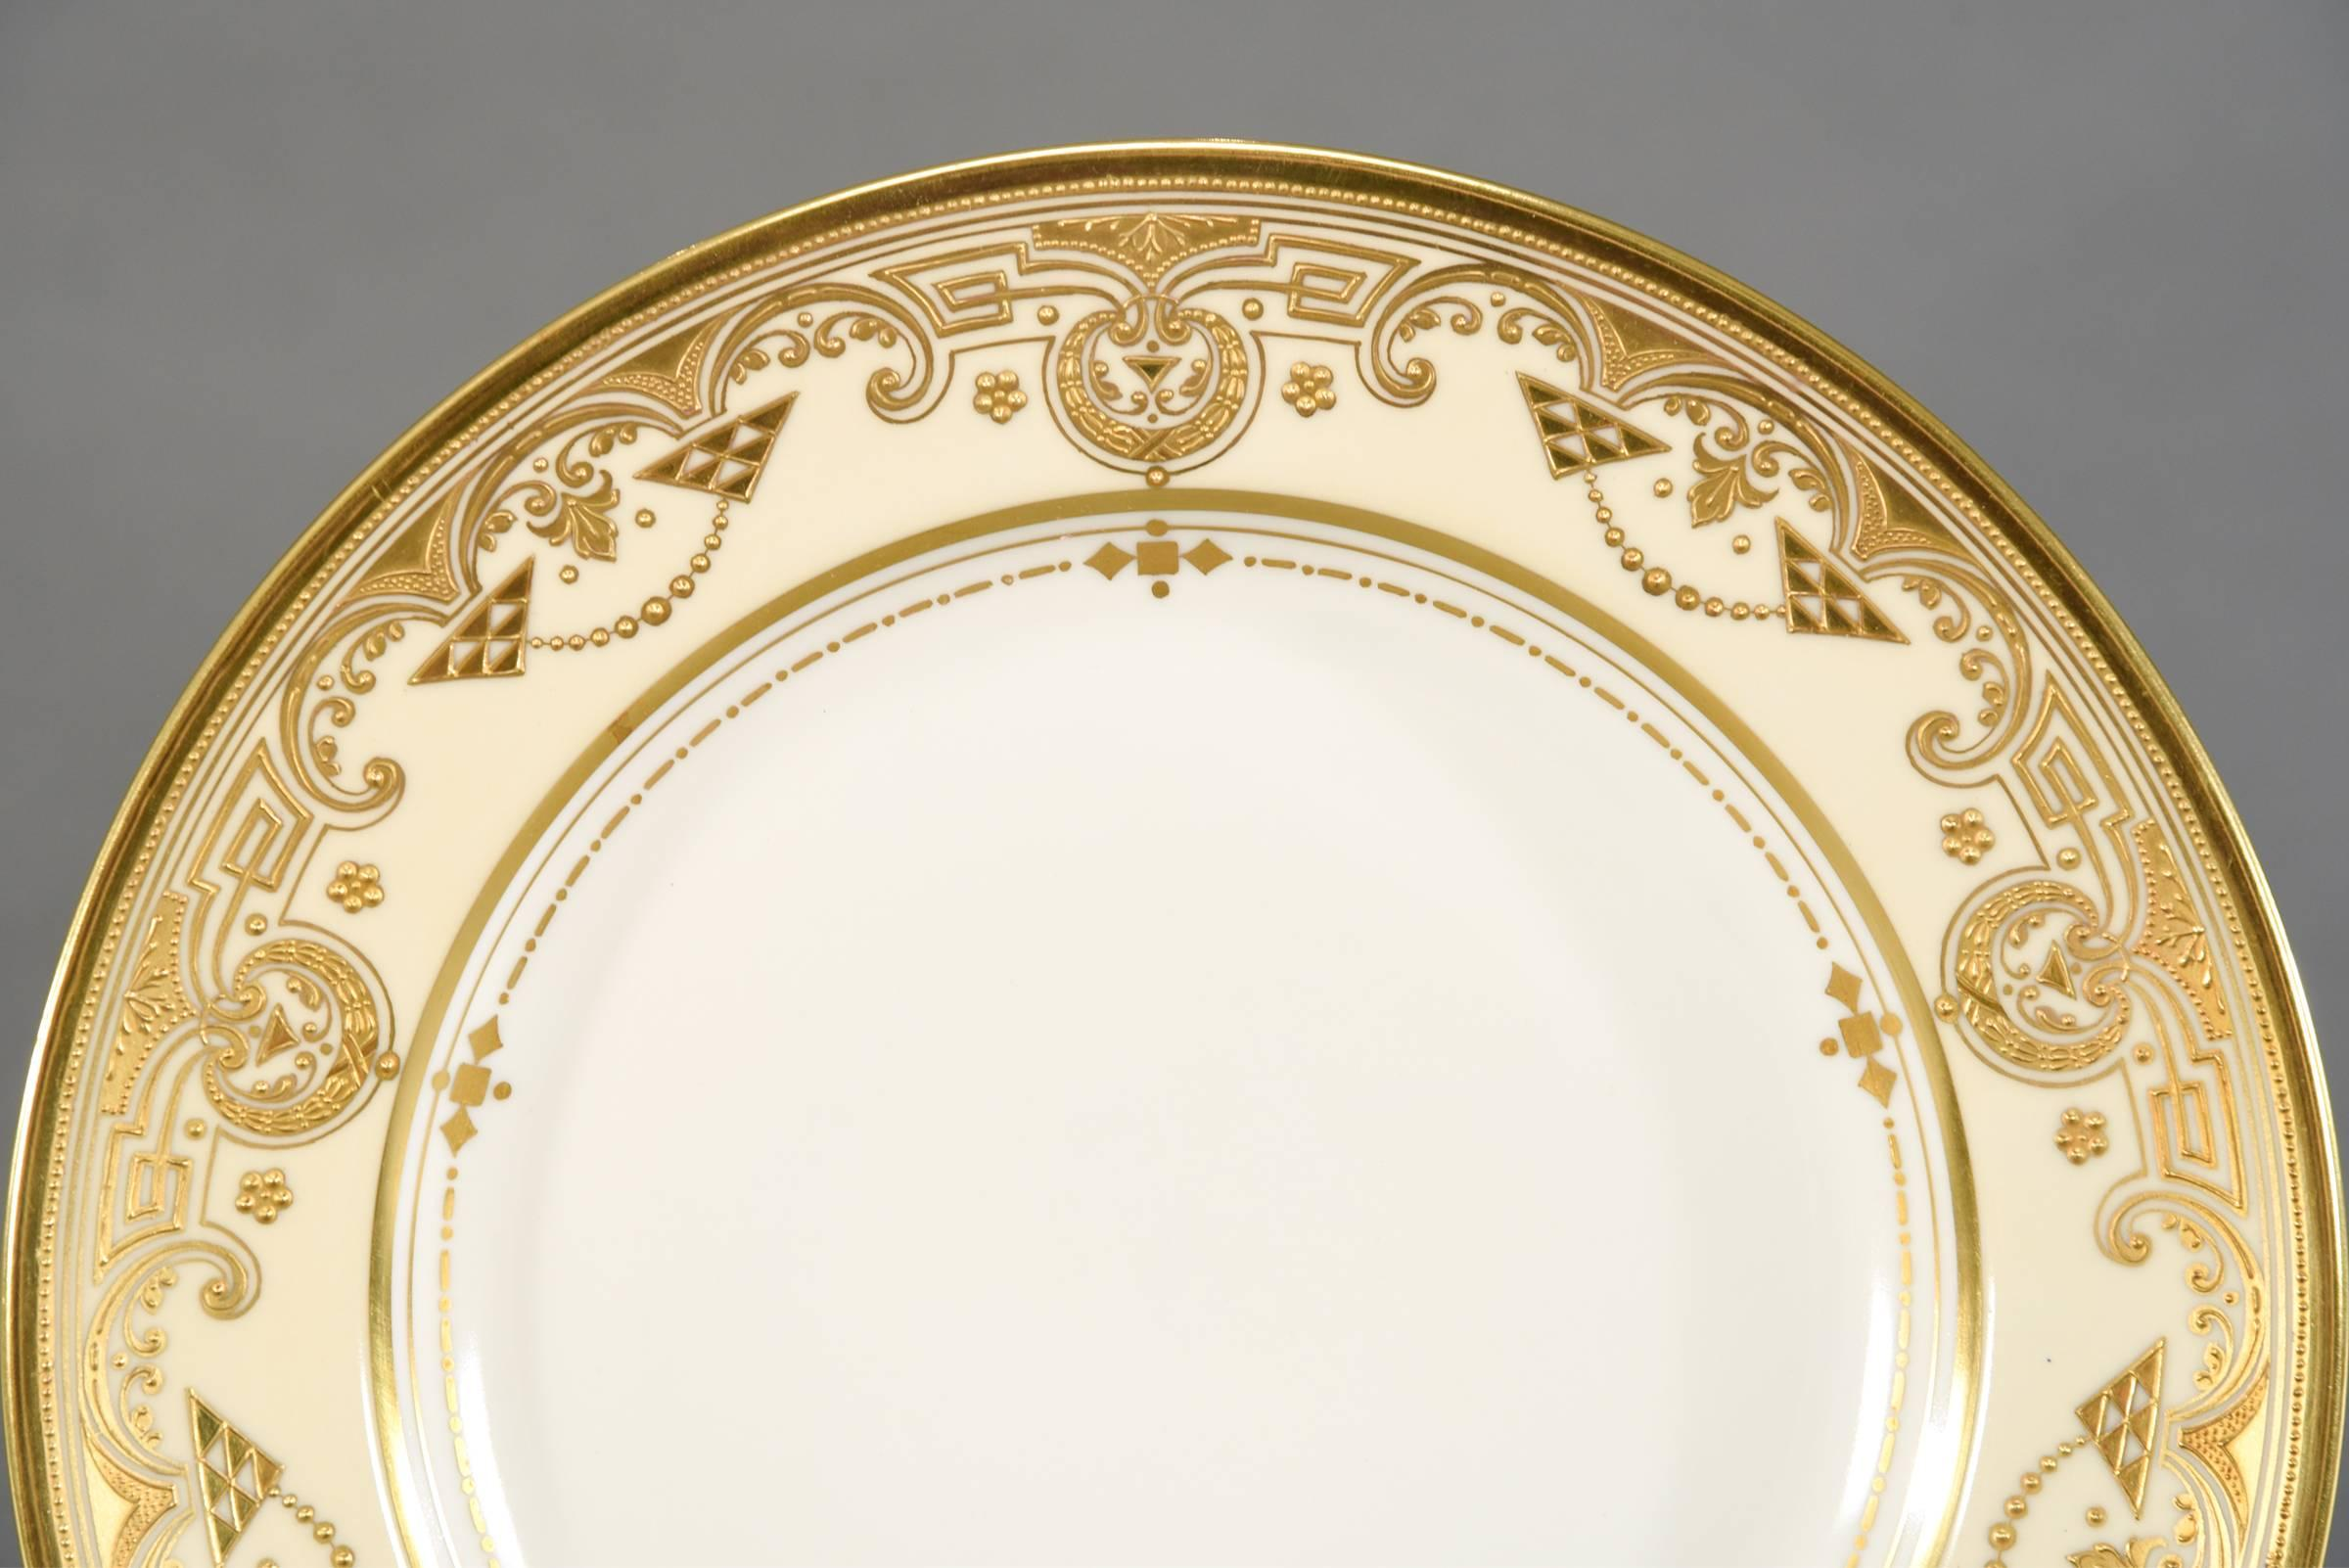 This set of 12 dinner plates are made by Lamm Dresden in a rare Arts \u0026 & 12 Lamm Dresden Arts and Crafts Raised Paste Gold and Cream Dinner ...